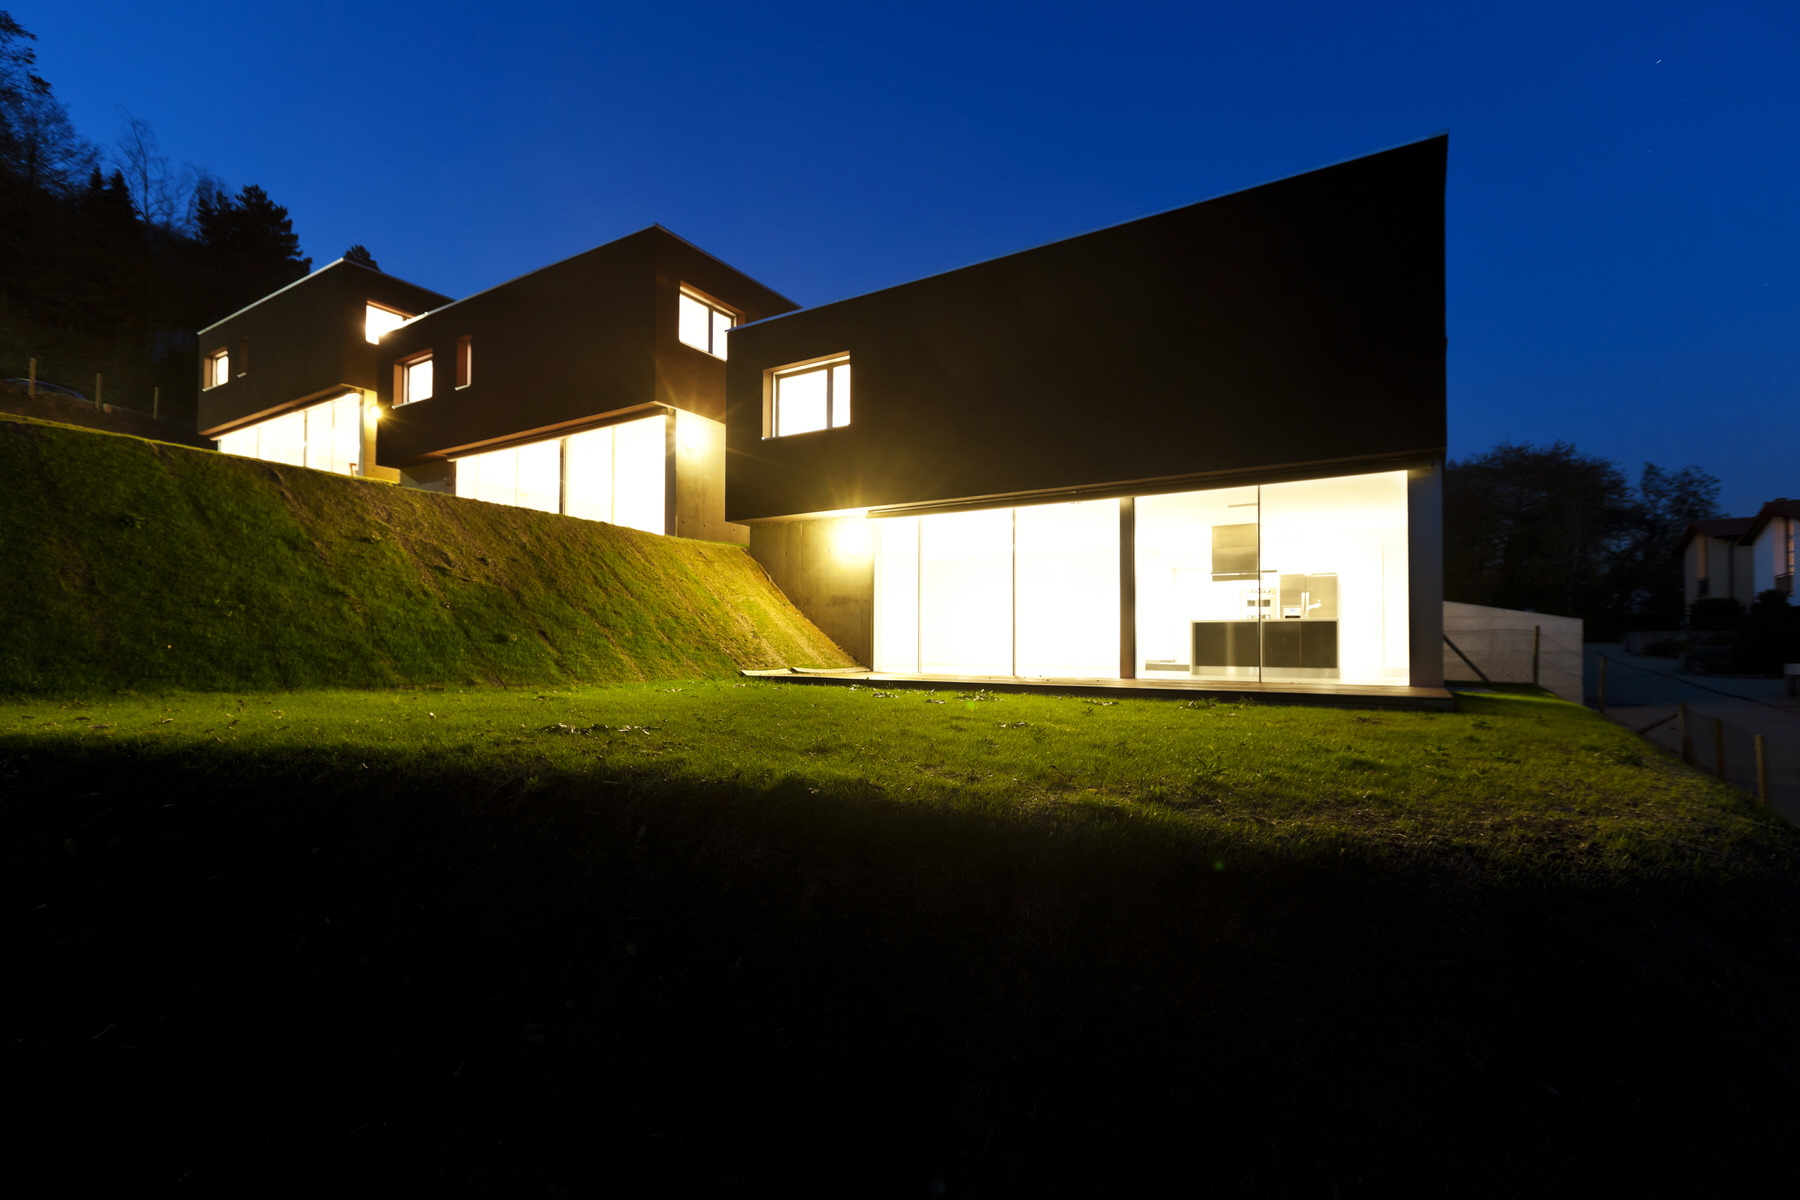 Modern House By Night Amg Architects